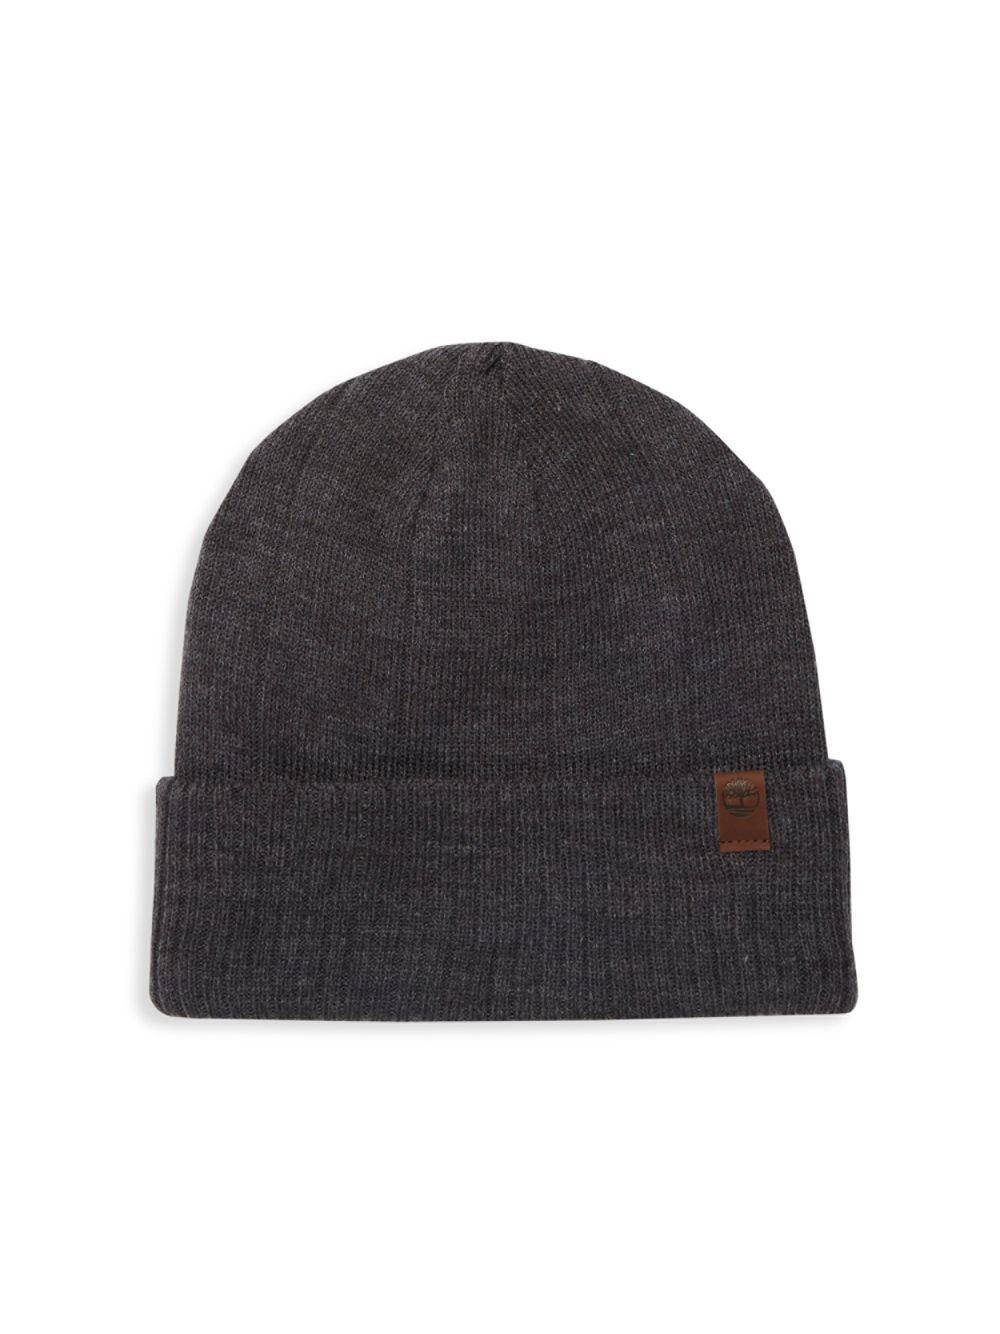 Timberland Knit Logo Beanie in Gray for Men - Lyst 2b24921005ea